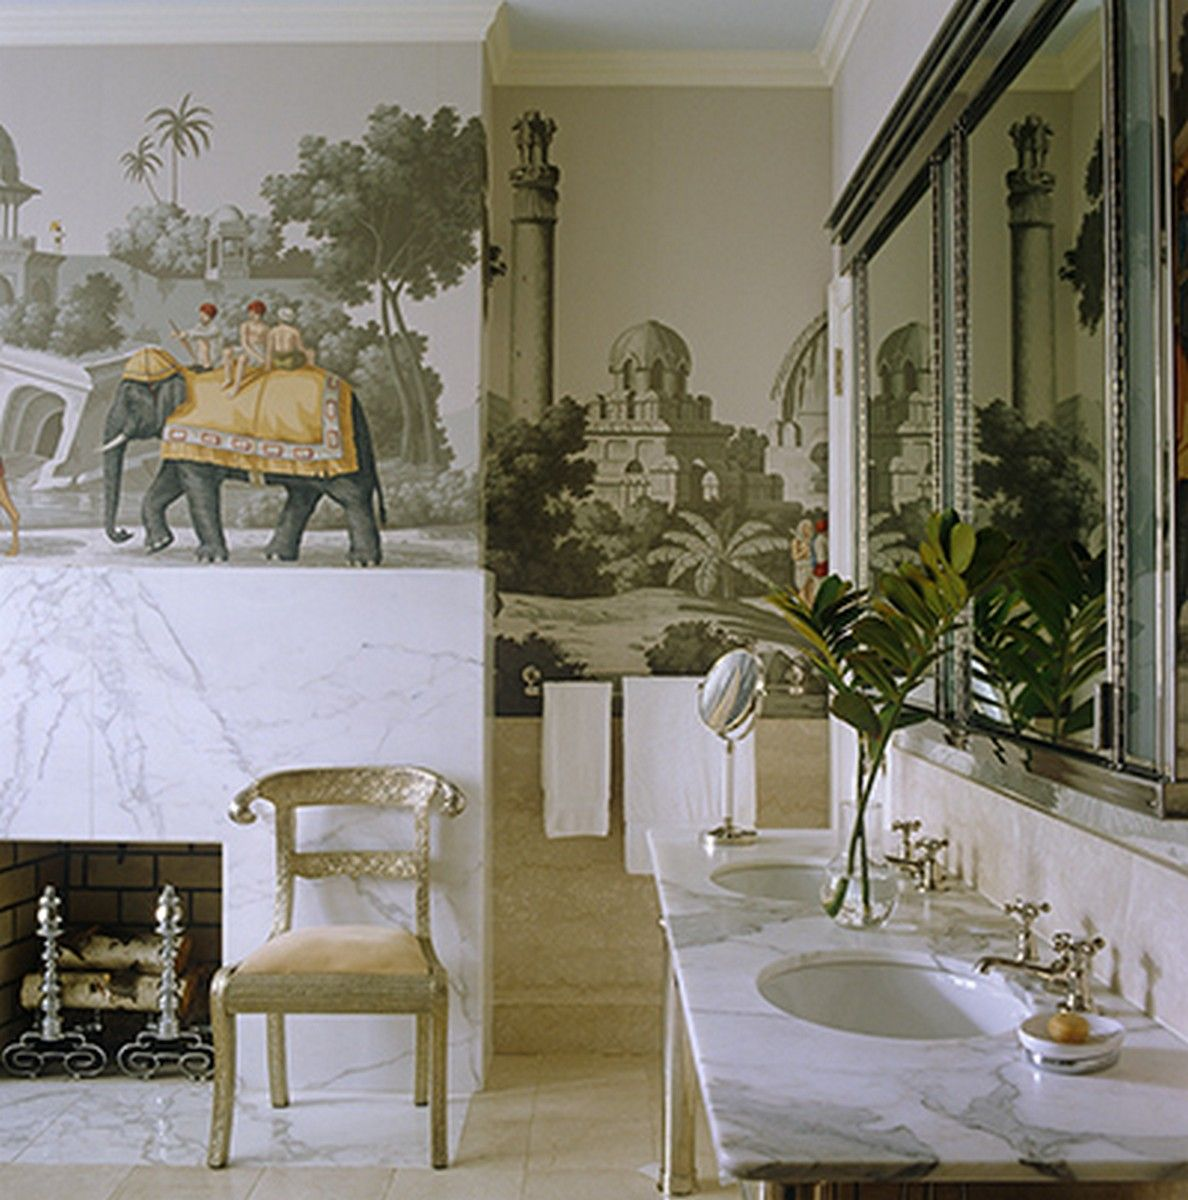 The walls of the bathroom are covered with a De Gournay Indian-themed papier peint with a touch of luxury coming from the grey marble fireplace and matching washstand